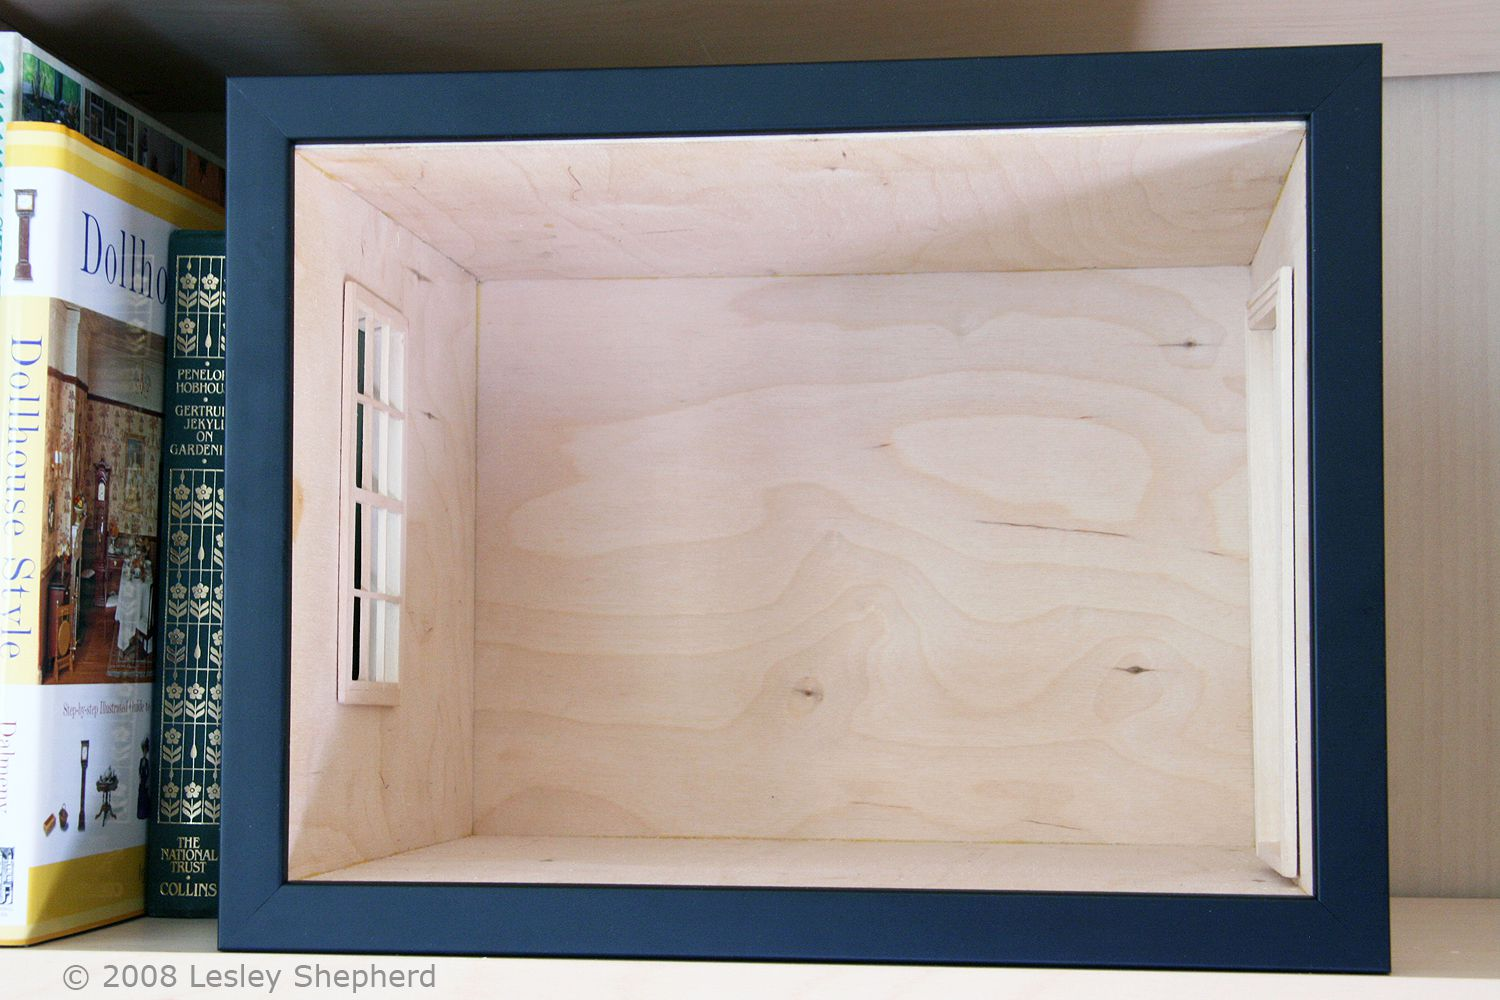 How to build room boxes for dollhouses or model scenes - Miniature room boxes interior design ...